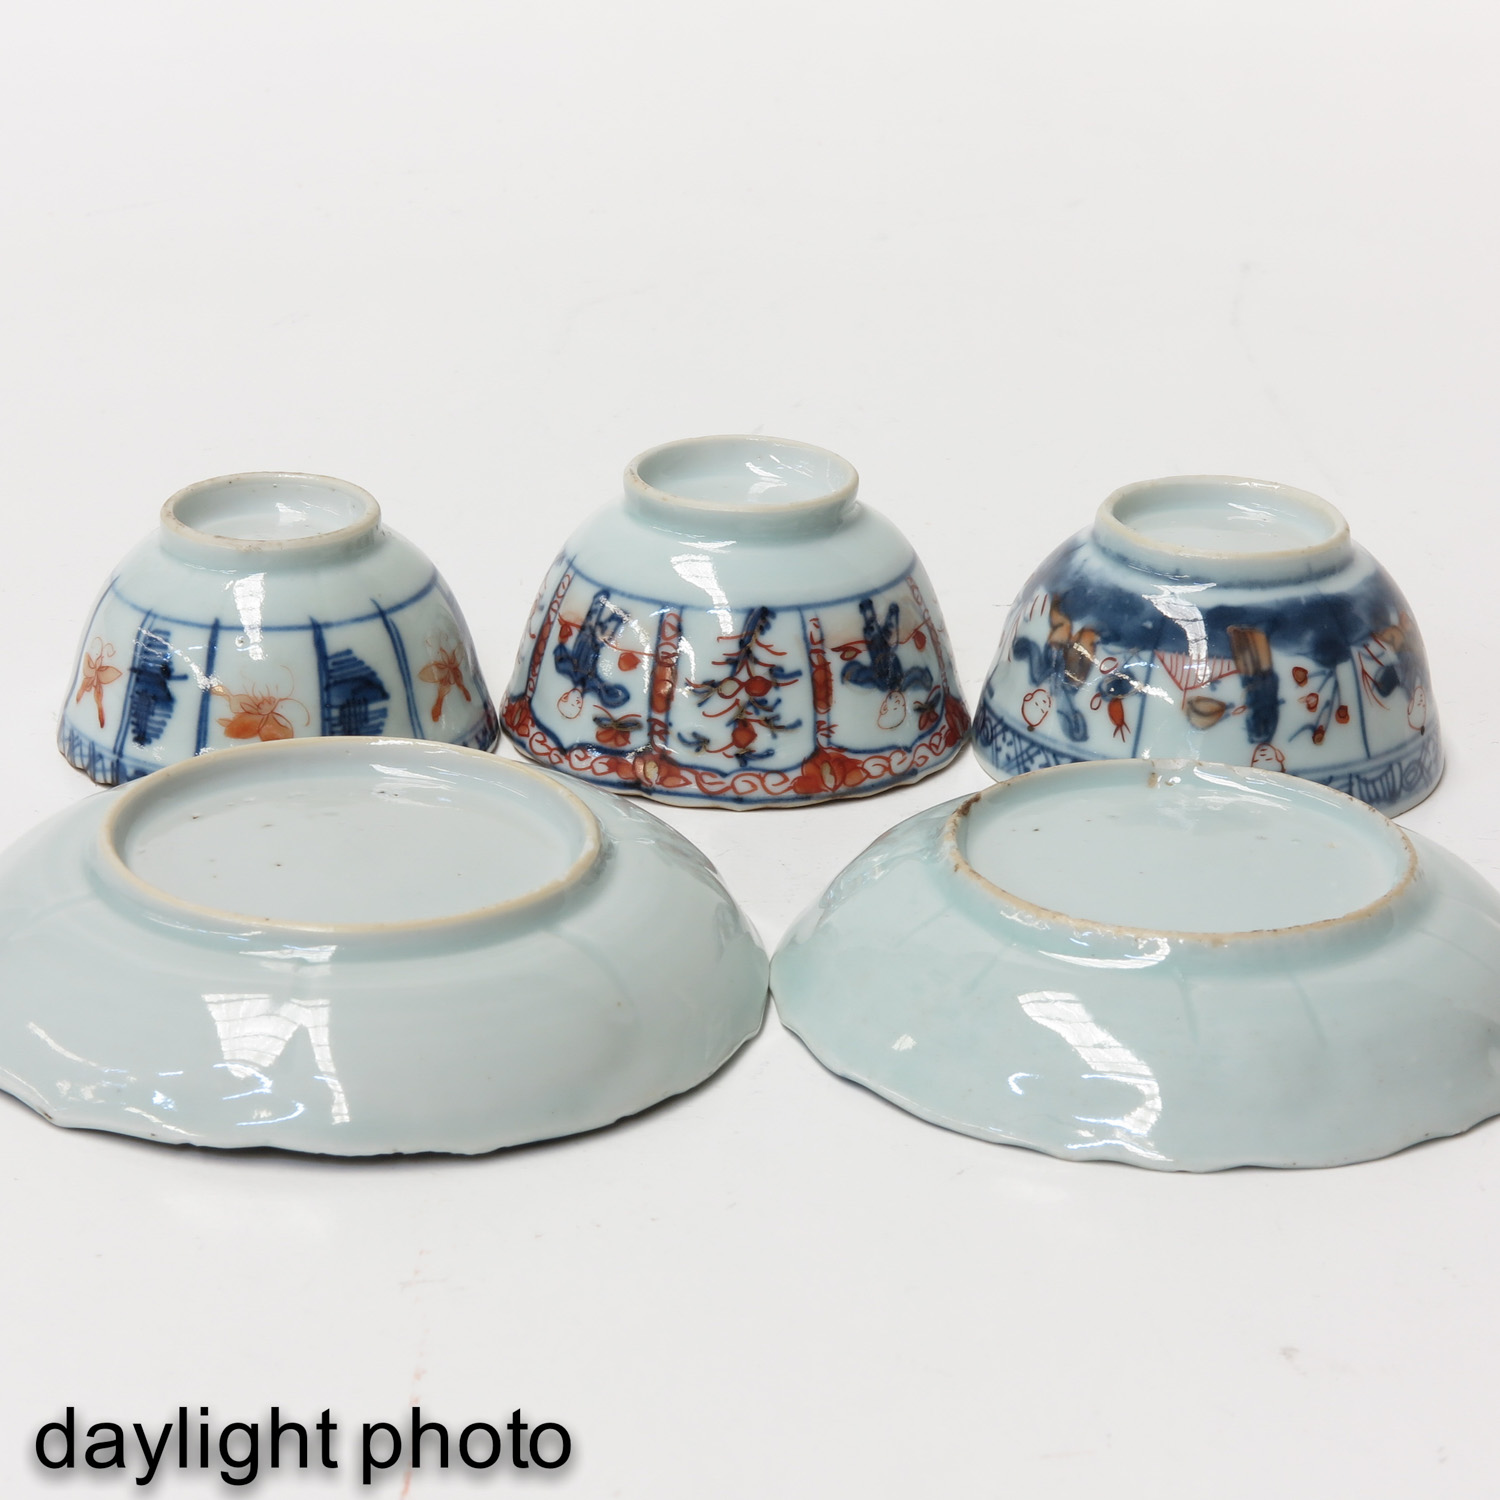 A Lot of 5 Cups and Saucers - Image 10 of 10